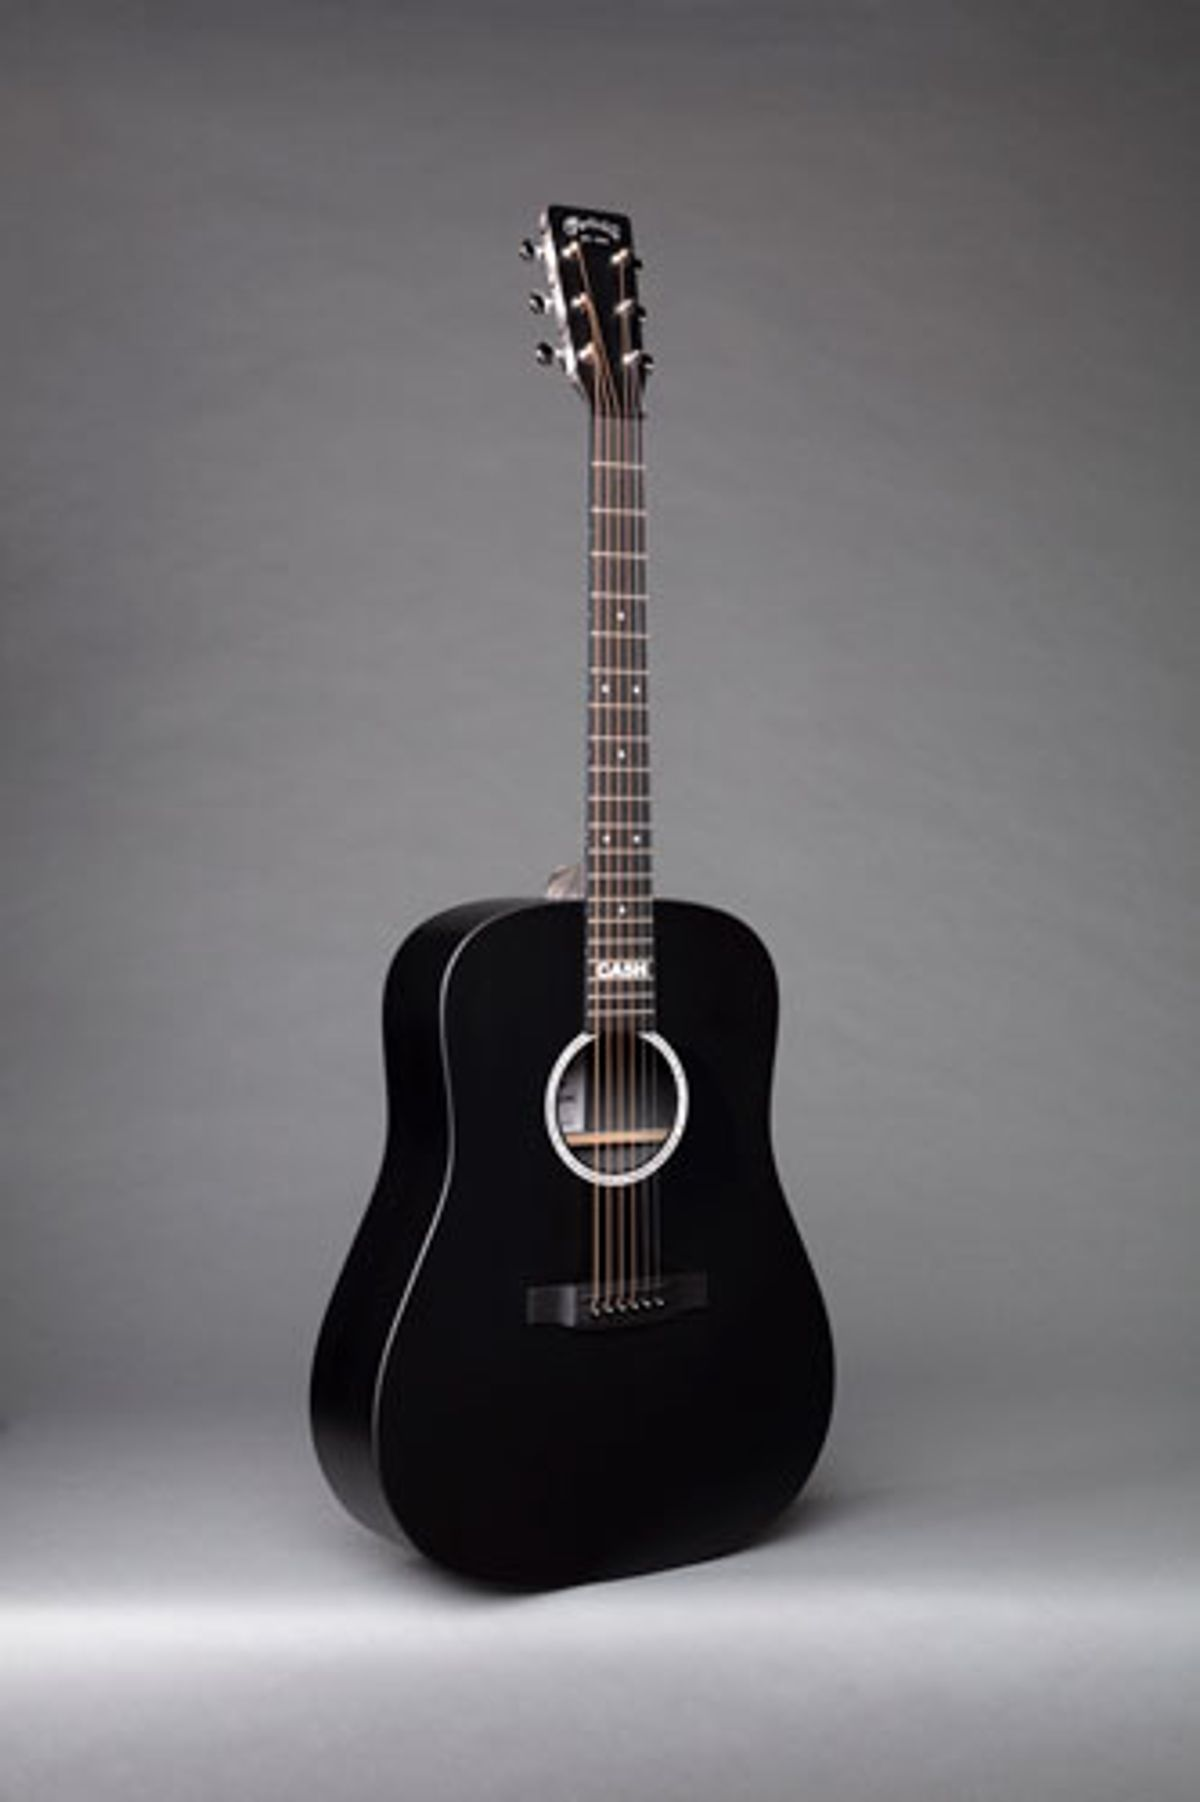 Martin Guitar and the Cash Foundation Introduce the DX Johnny Cash Model